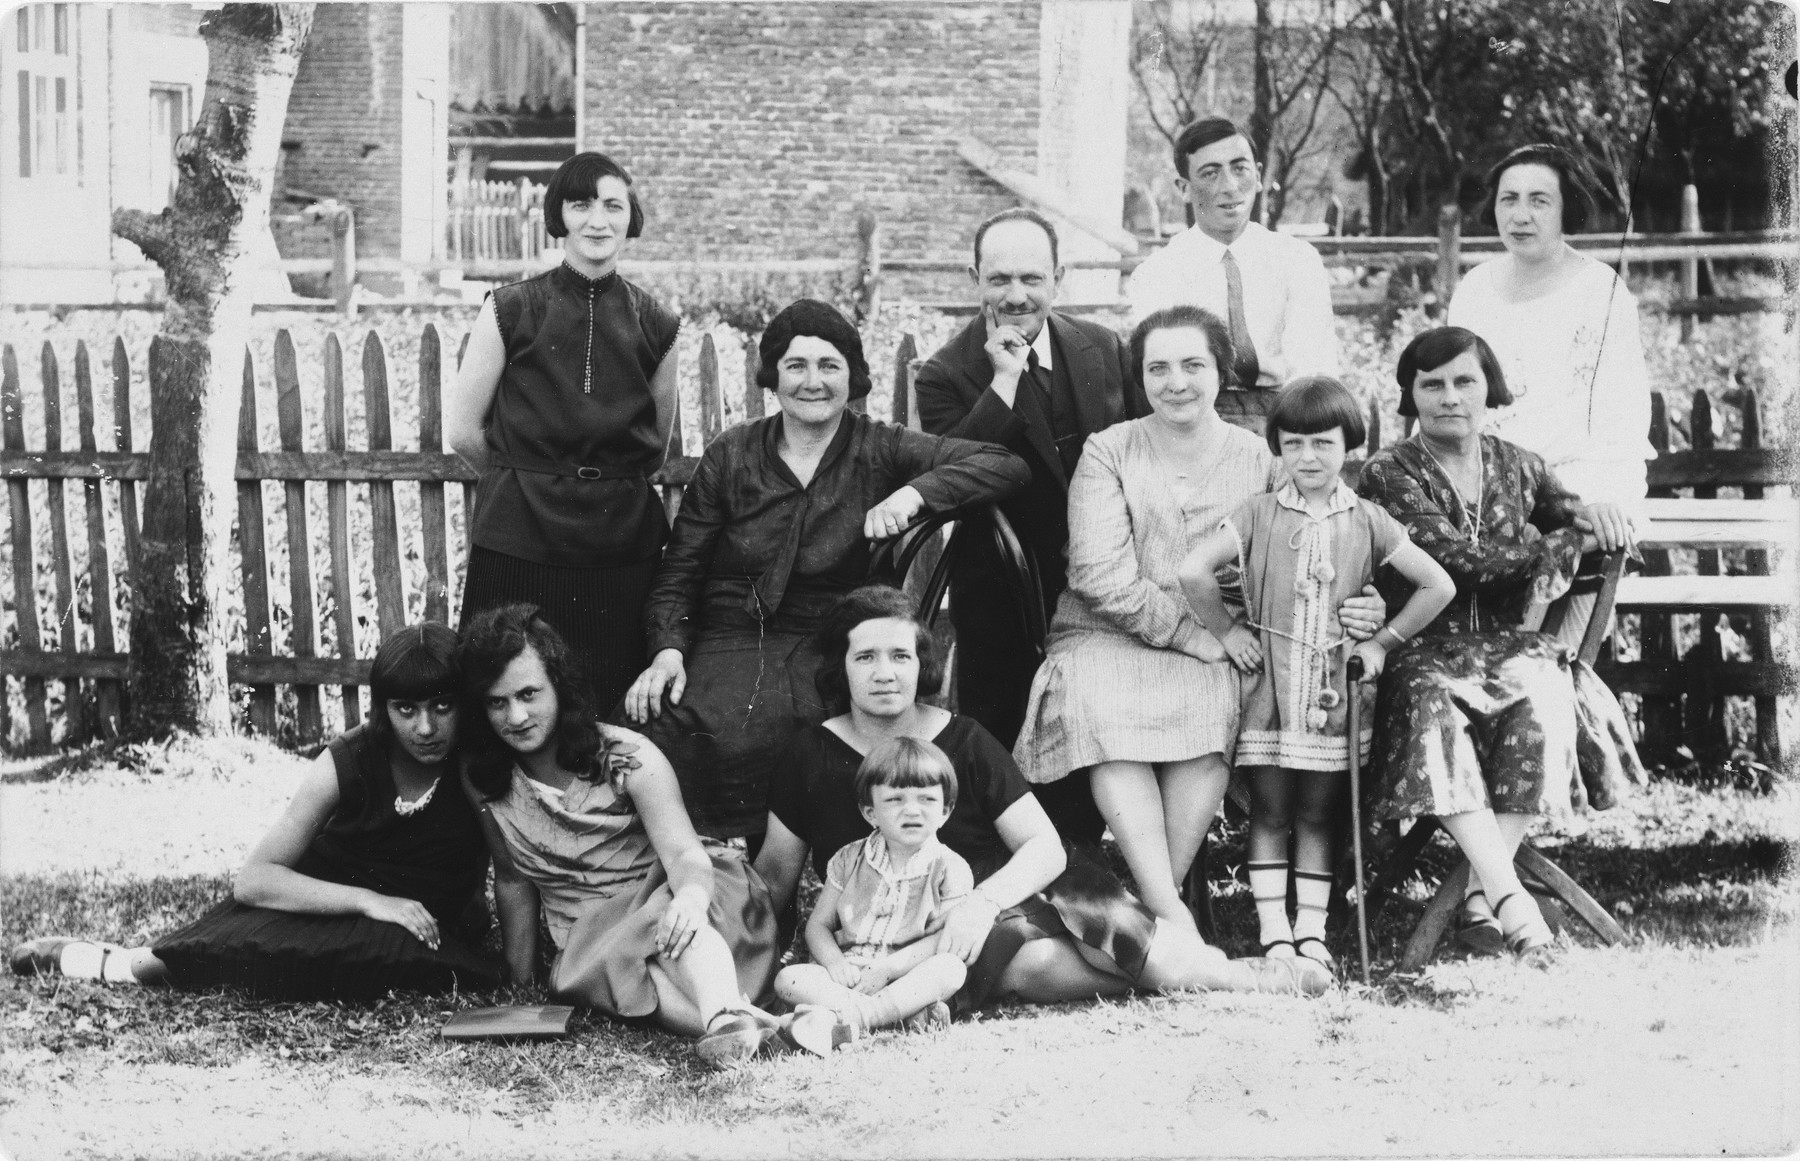 Group portrait of members of the extended Münzer family in Rymanow, Poland.  Among those pictured are Gitel Münzer (upper left) and her mother, Sara (Bucher) Münzer (middle row, third from the right in the light dress).